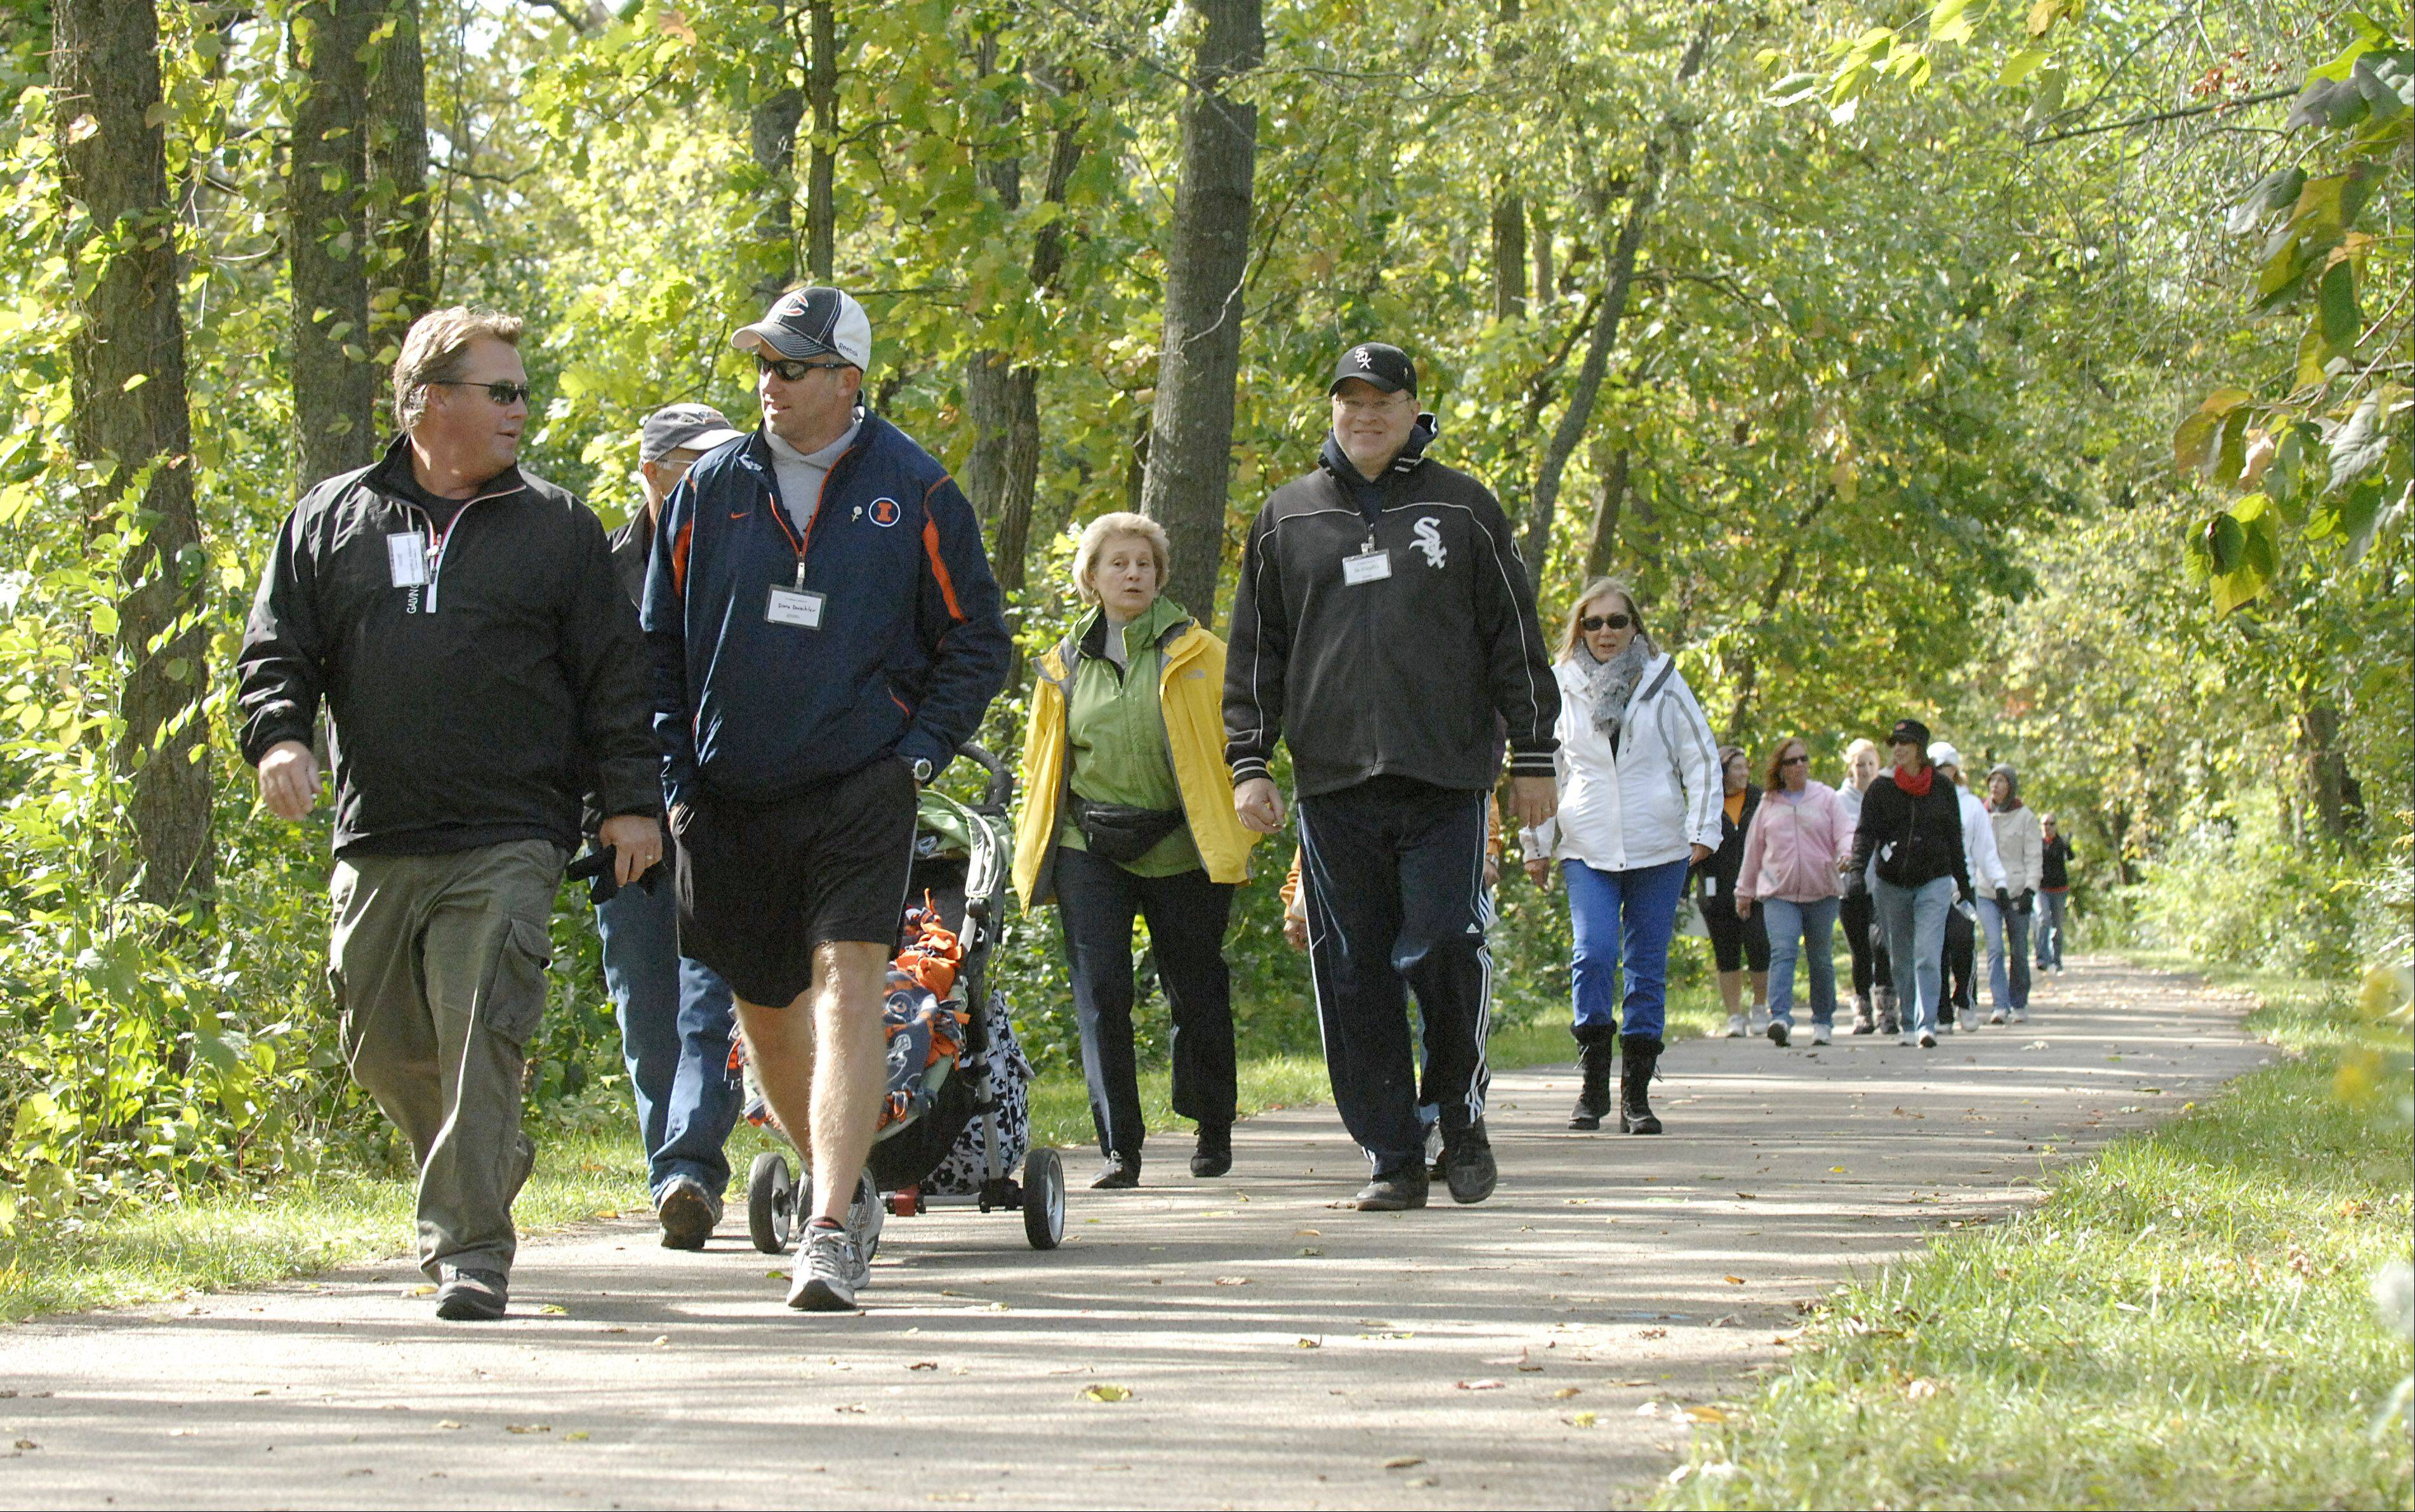 Close to 190 participants joined last year in Fox Valley Volunteer Hospice's Hike for Hospice 5K in Batavia. This year's hike takes place Saturday, Sept. 28.